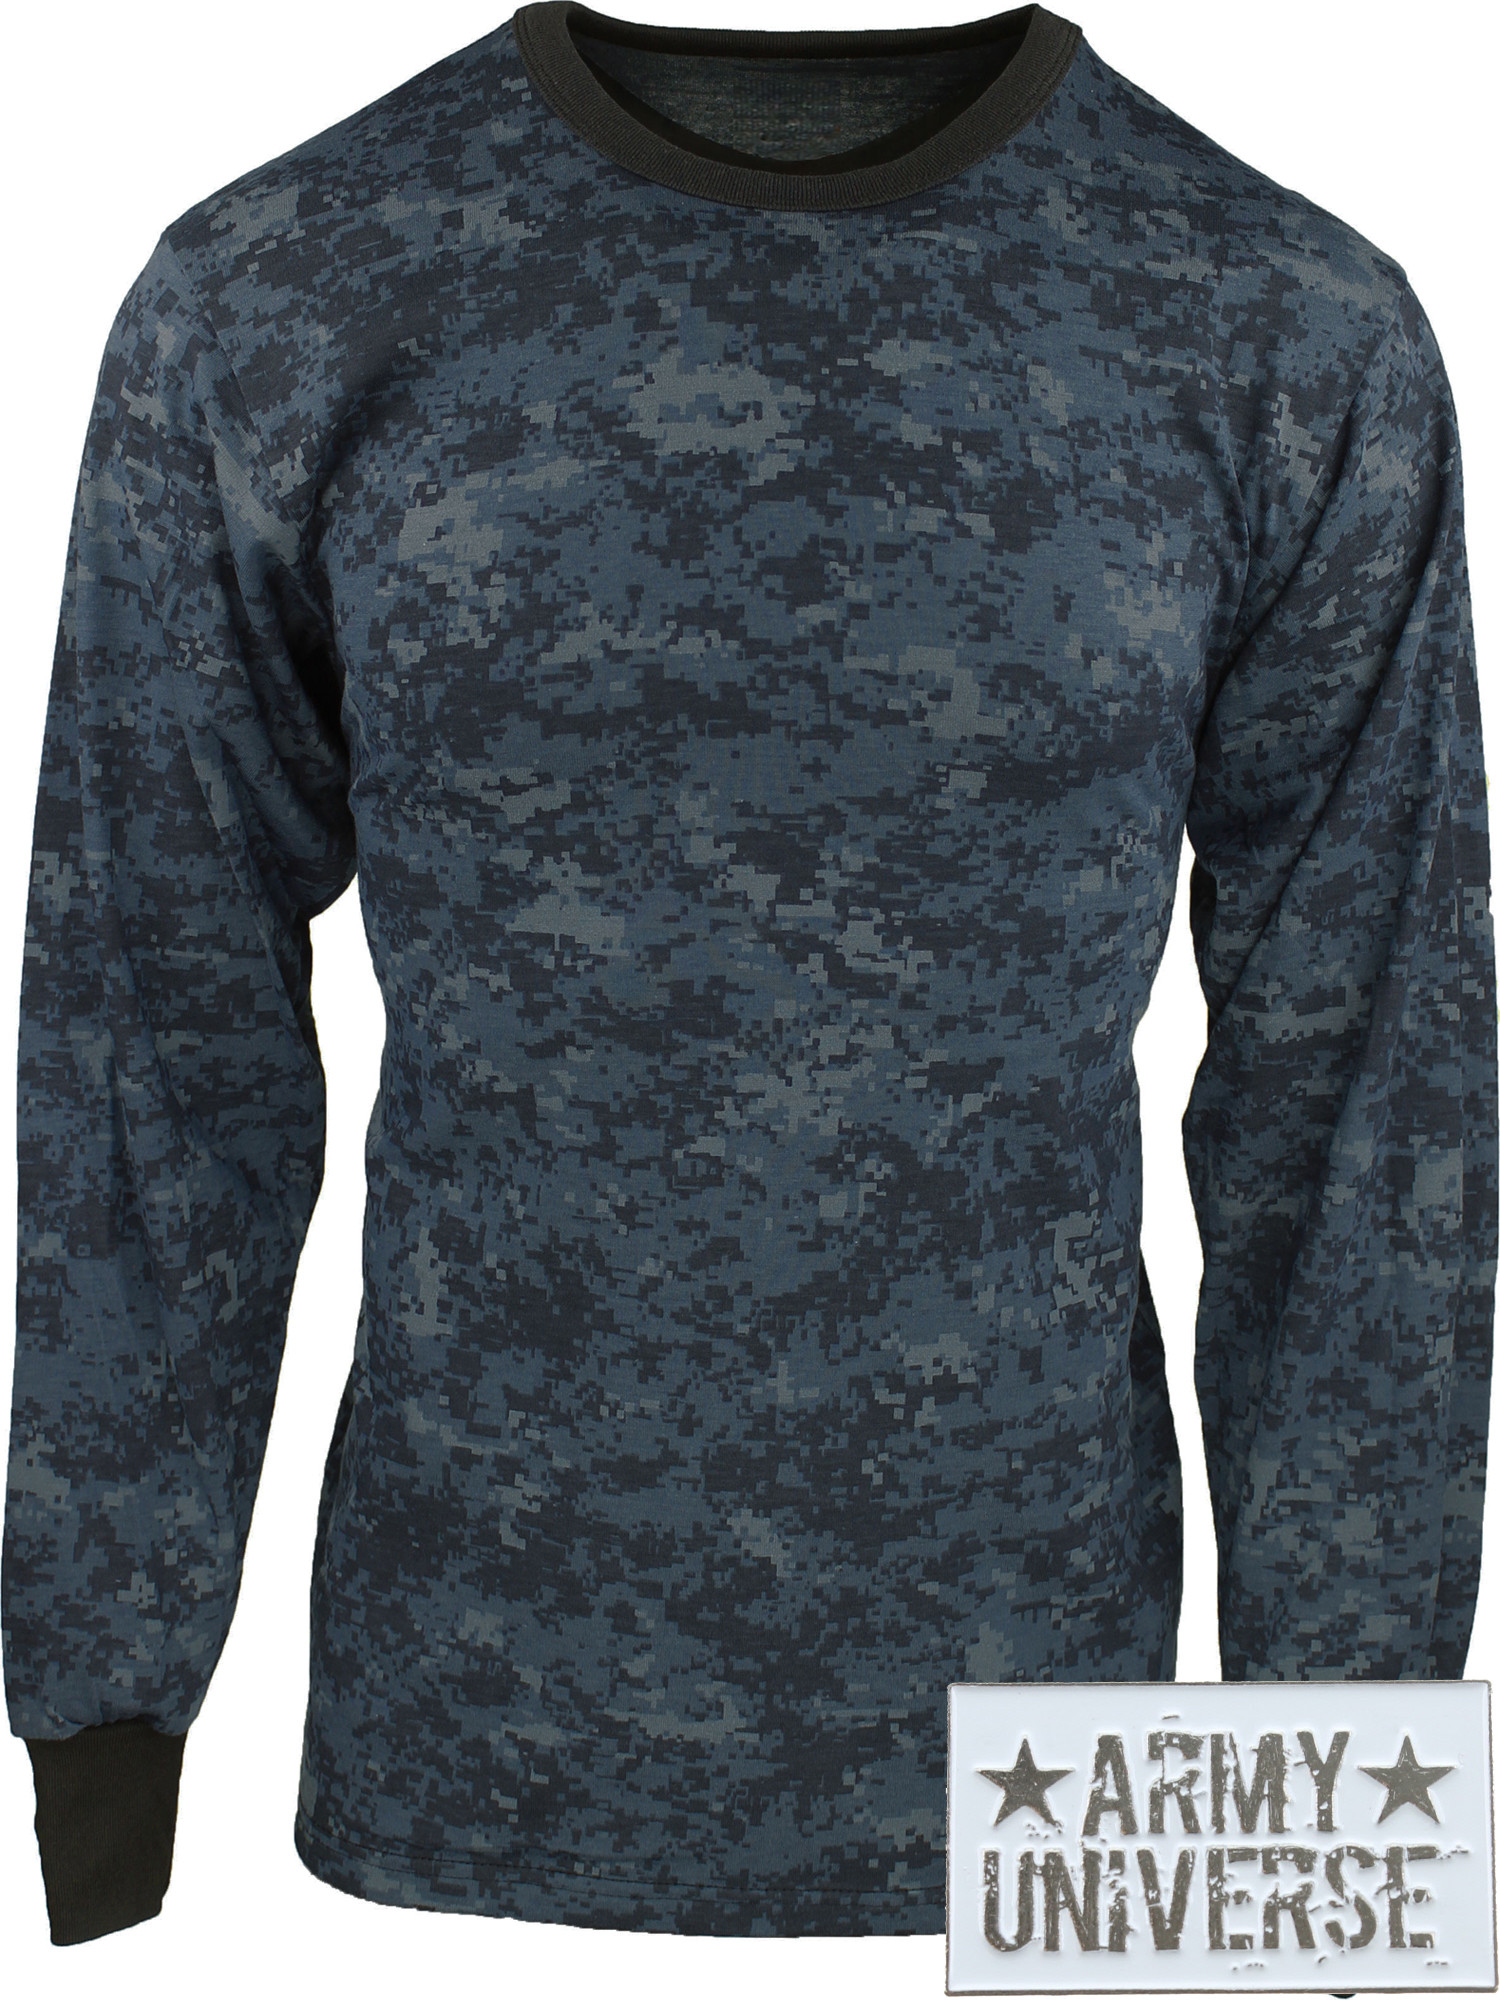 ... Midnight Blue Digital Camouflage Military Crewneck Long Sleeve T Shirt  w  ArmyUniverse® Pin ... 1f00f7788b6